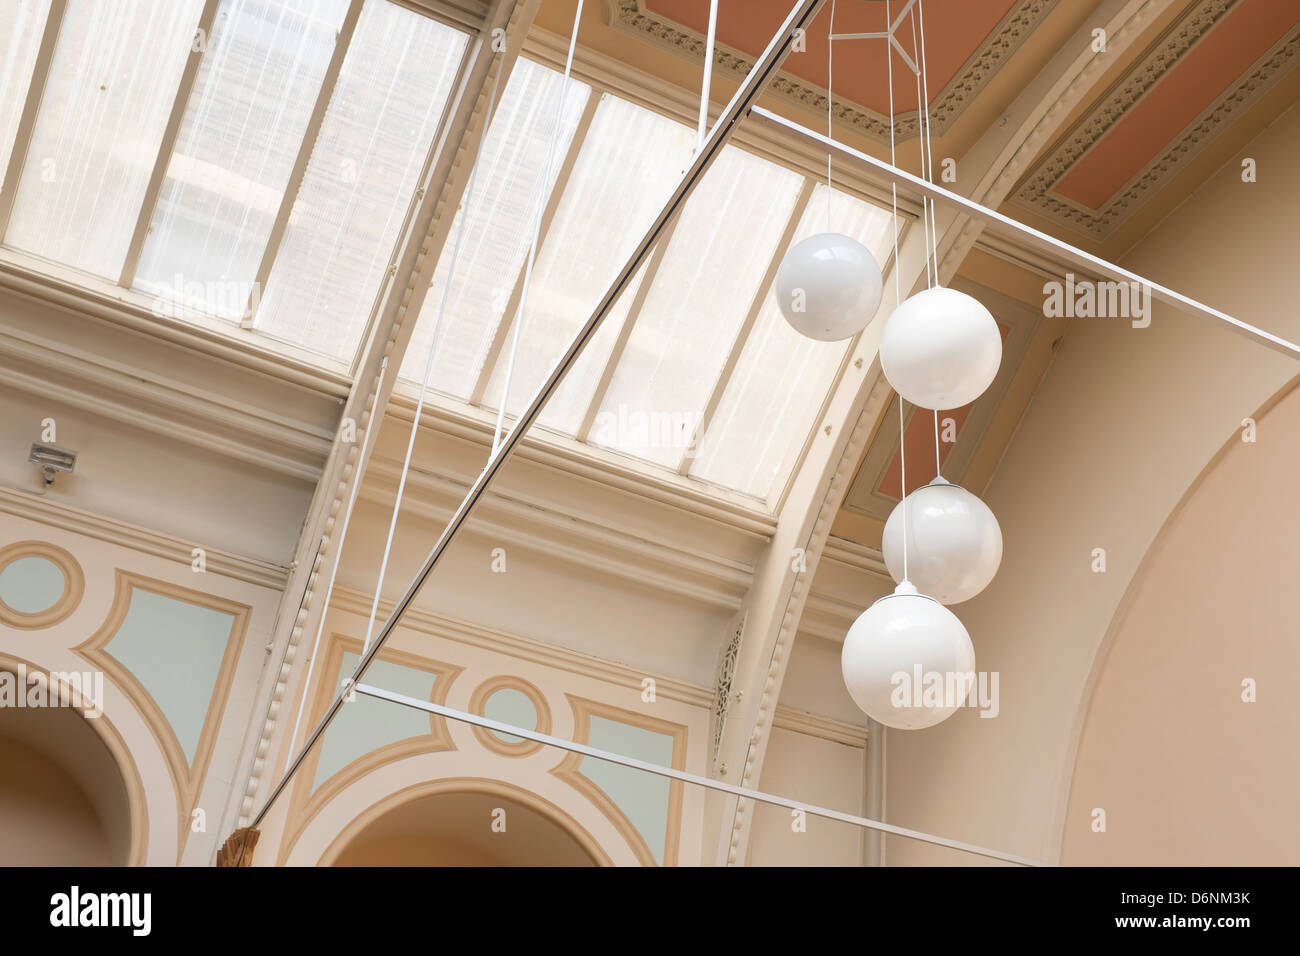 The old \'globe\' lights inside the vaulted ceiling of former local ...